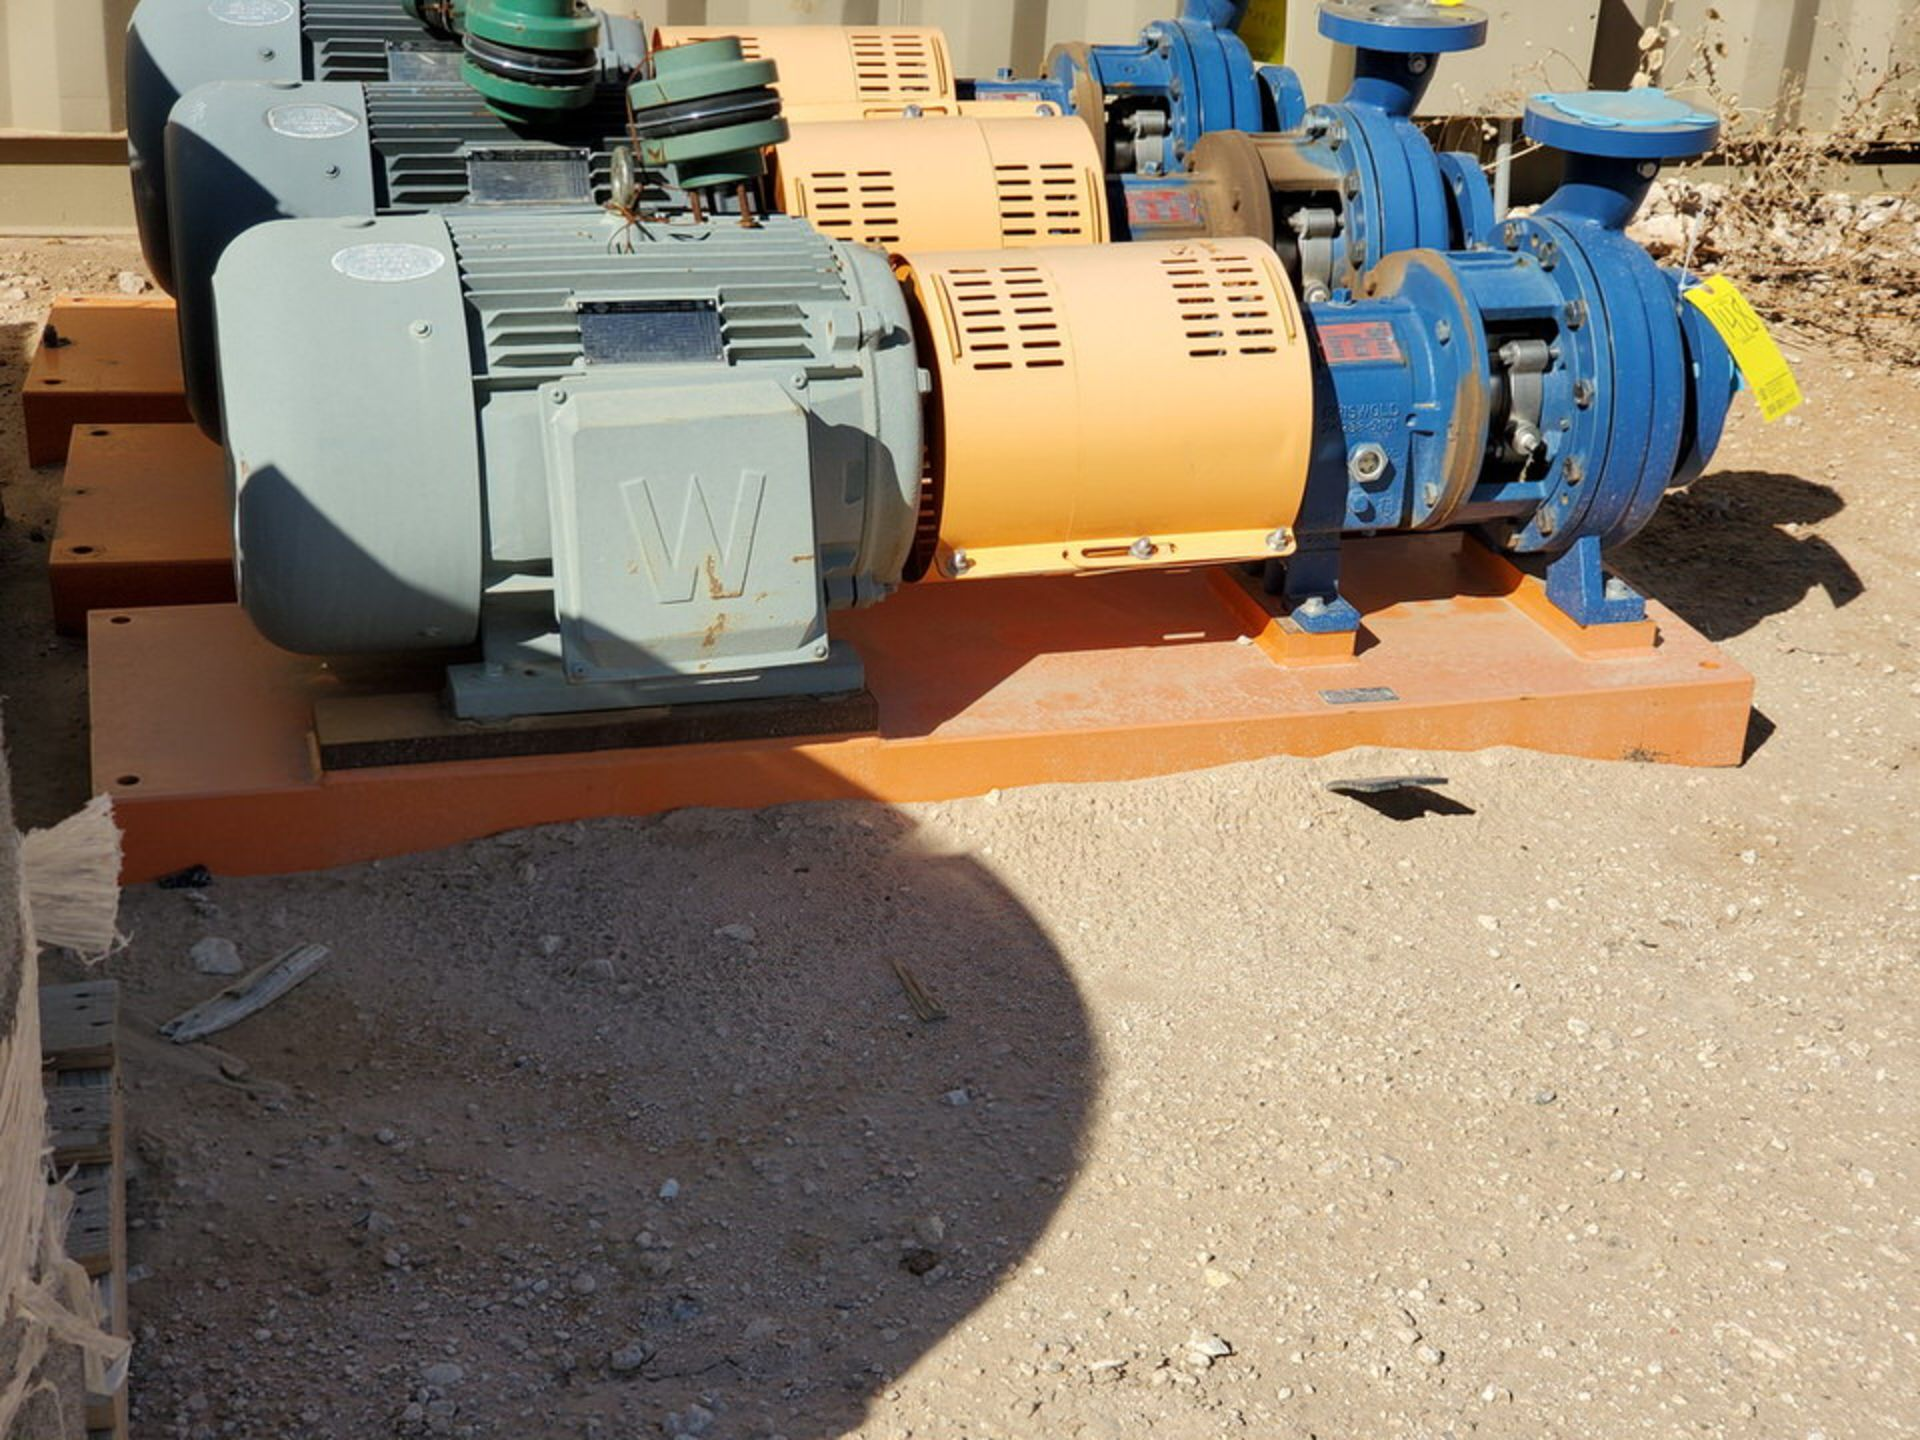 2018 Griswold 811M Centrifugal Pump Size: 4 x 3-10, 7.83 Imp Dia; W/ 50HP Motor - Image 4 of 8